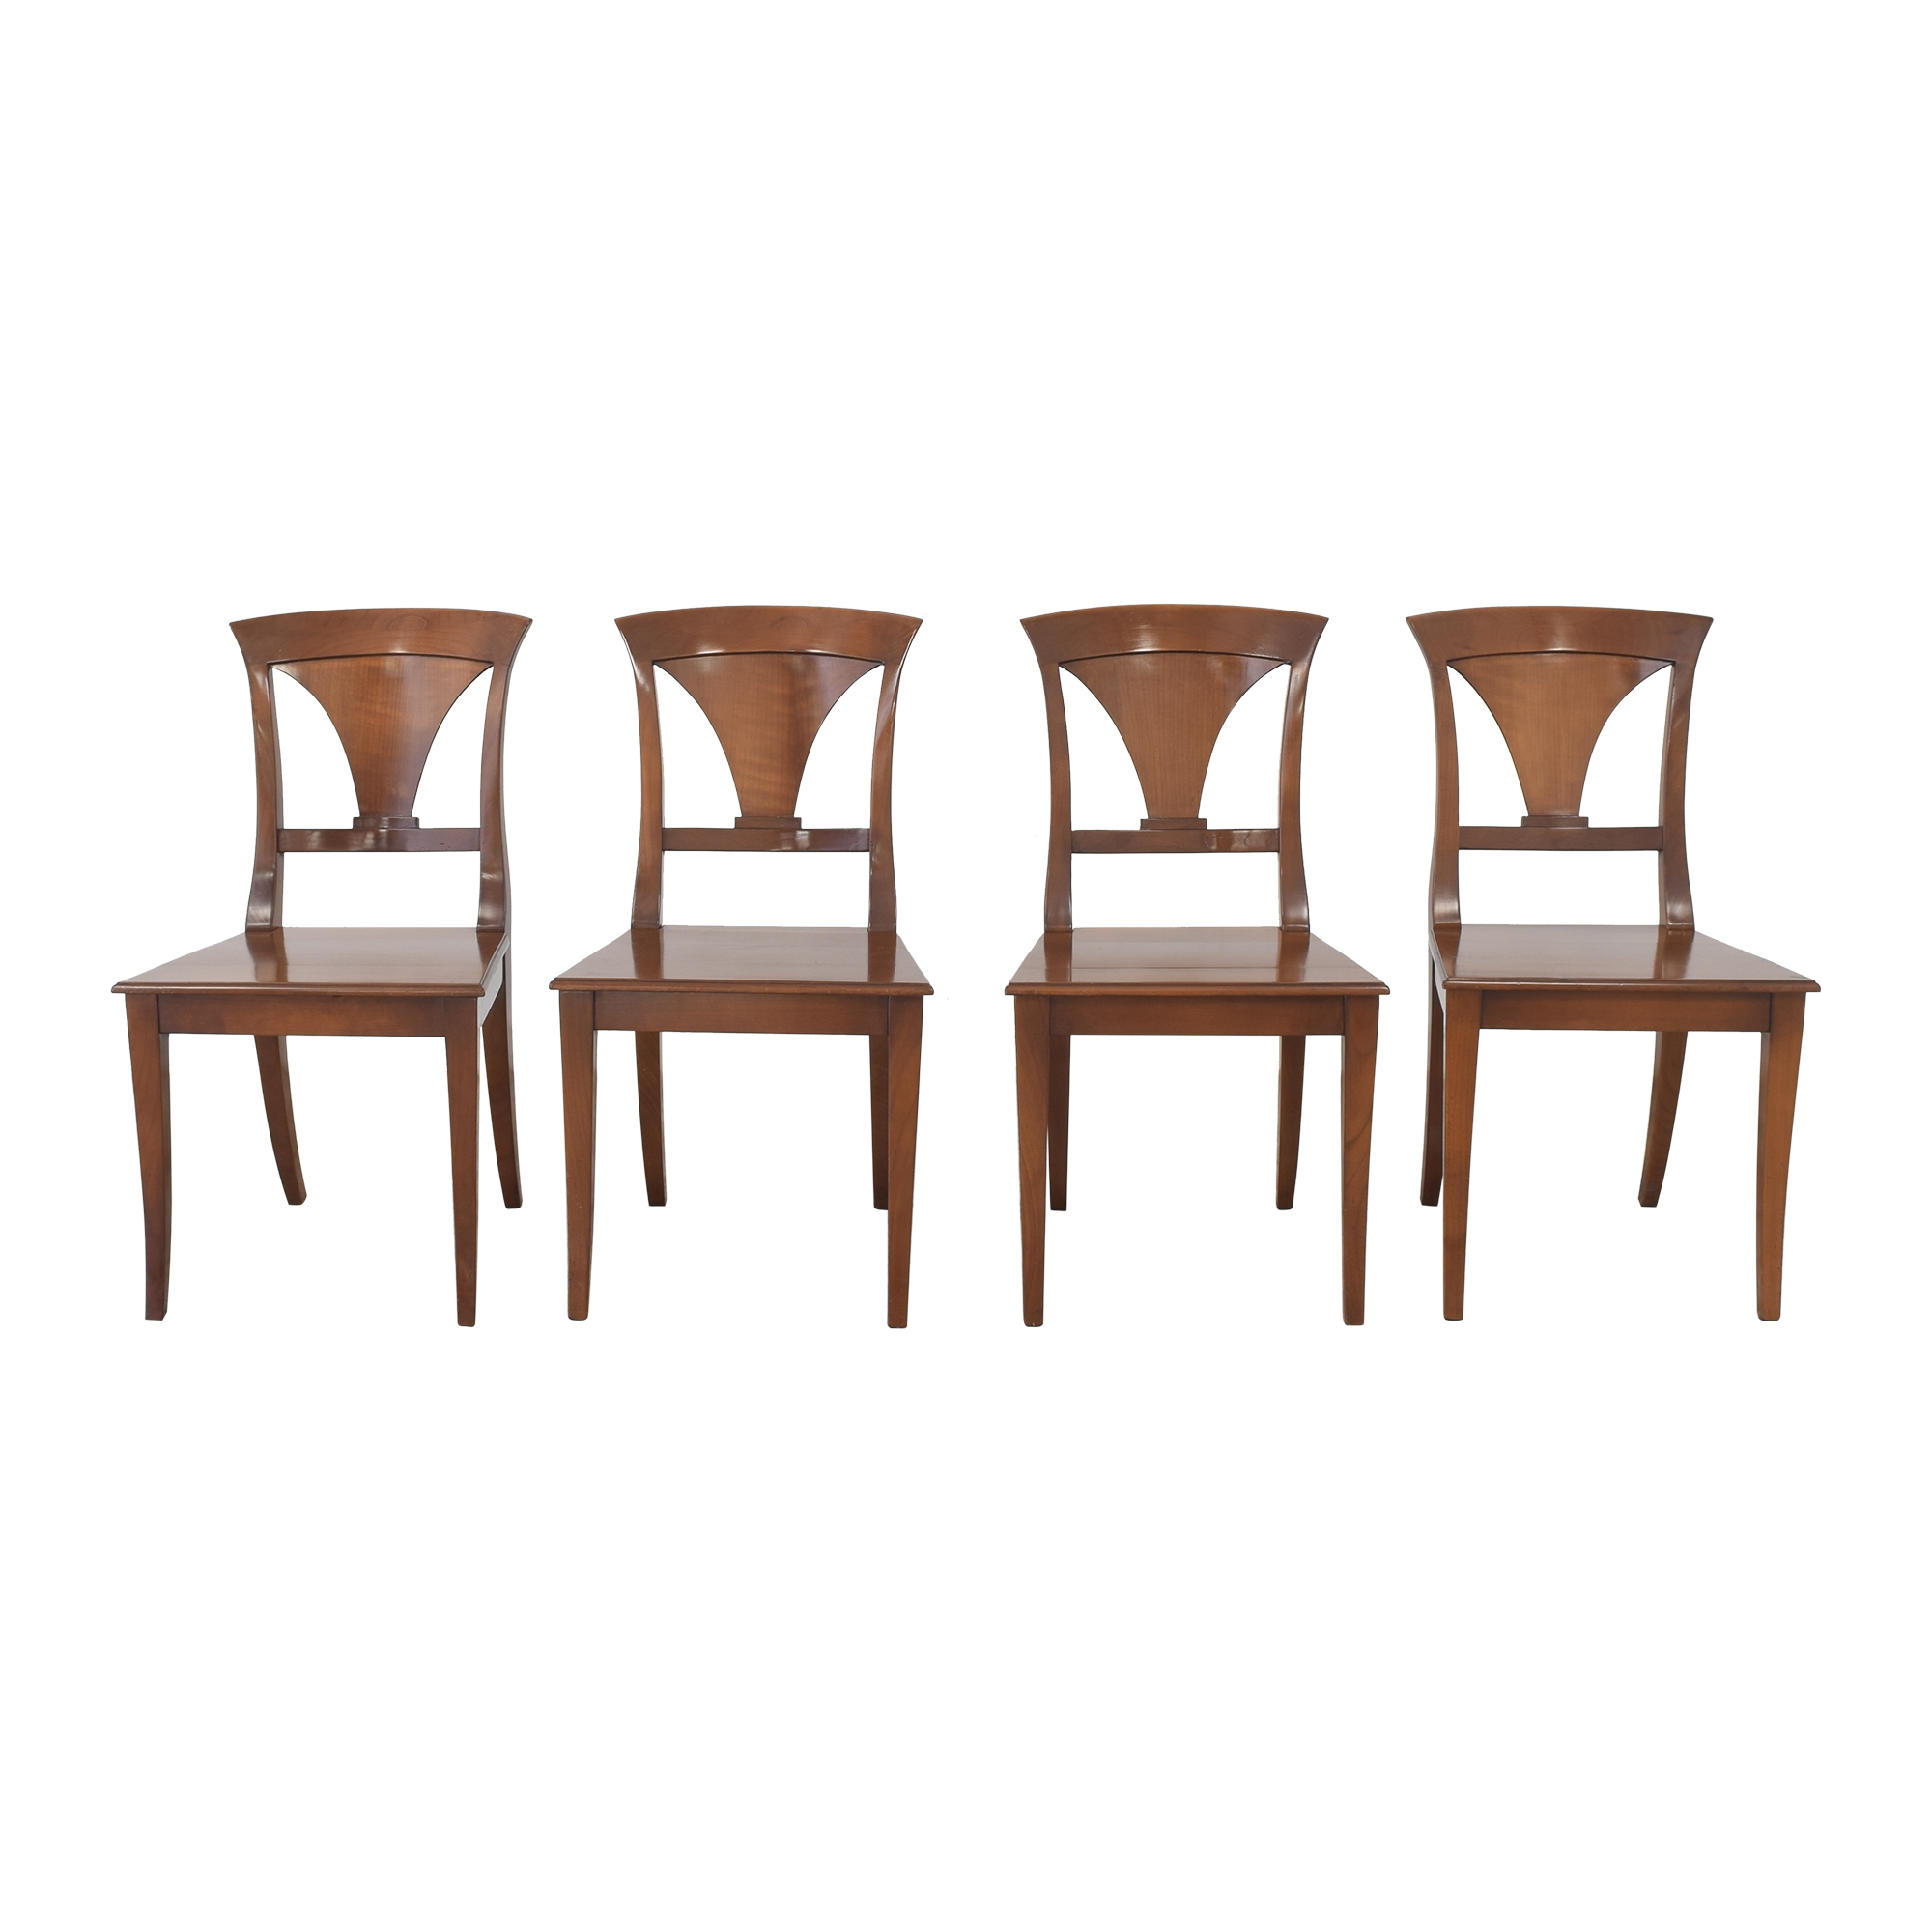 Pfister Pfister Swiss Style Dining Chairs ma